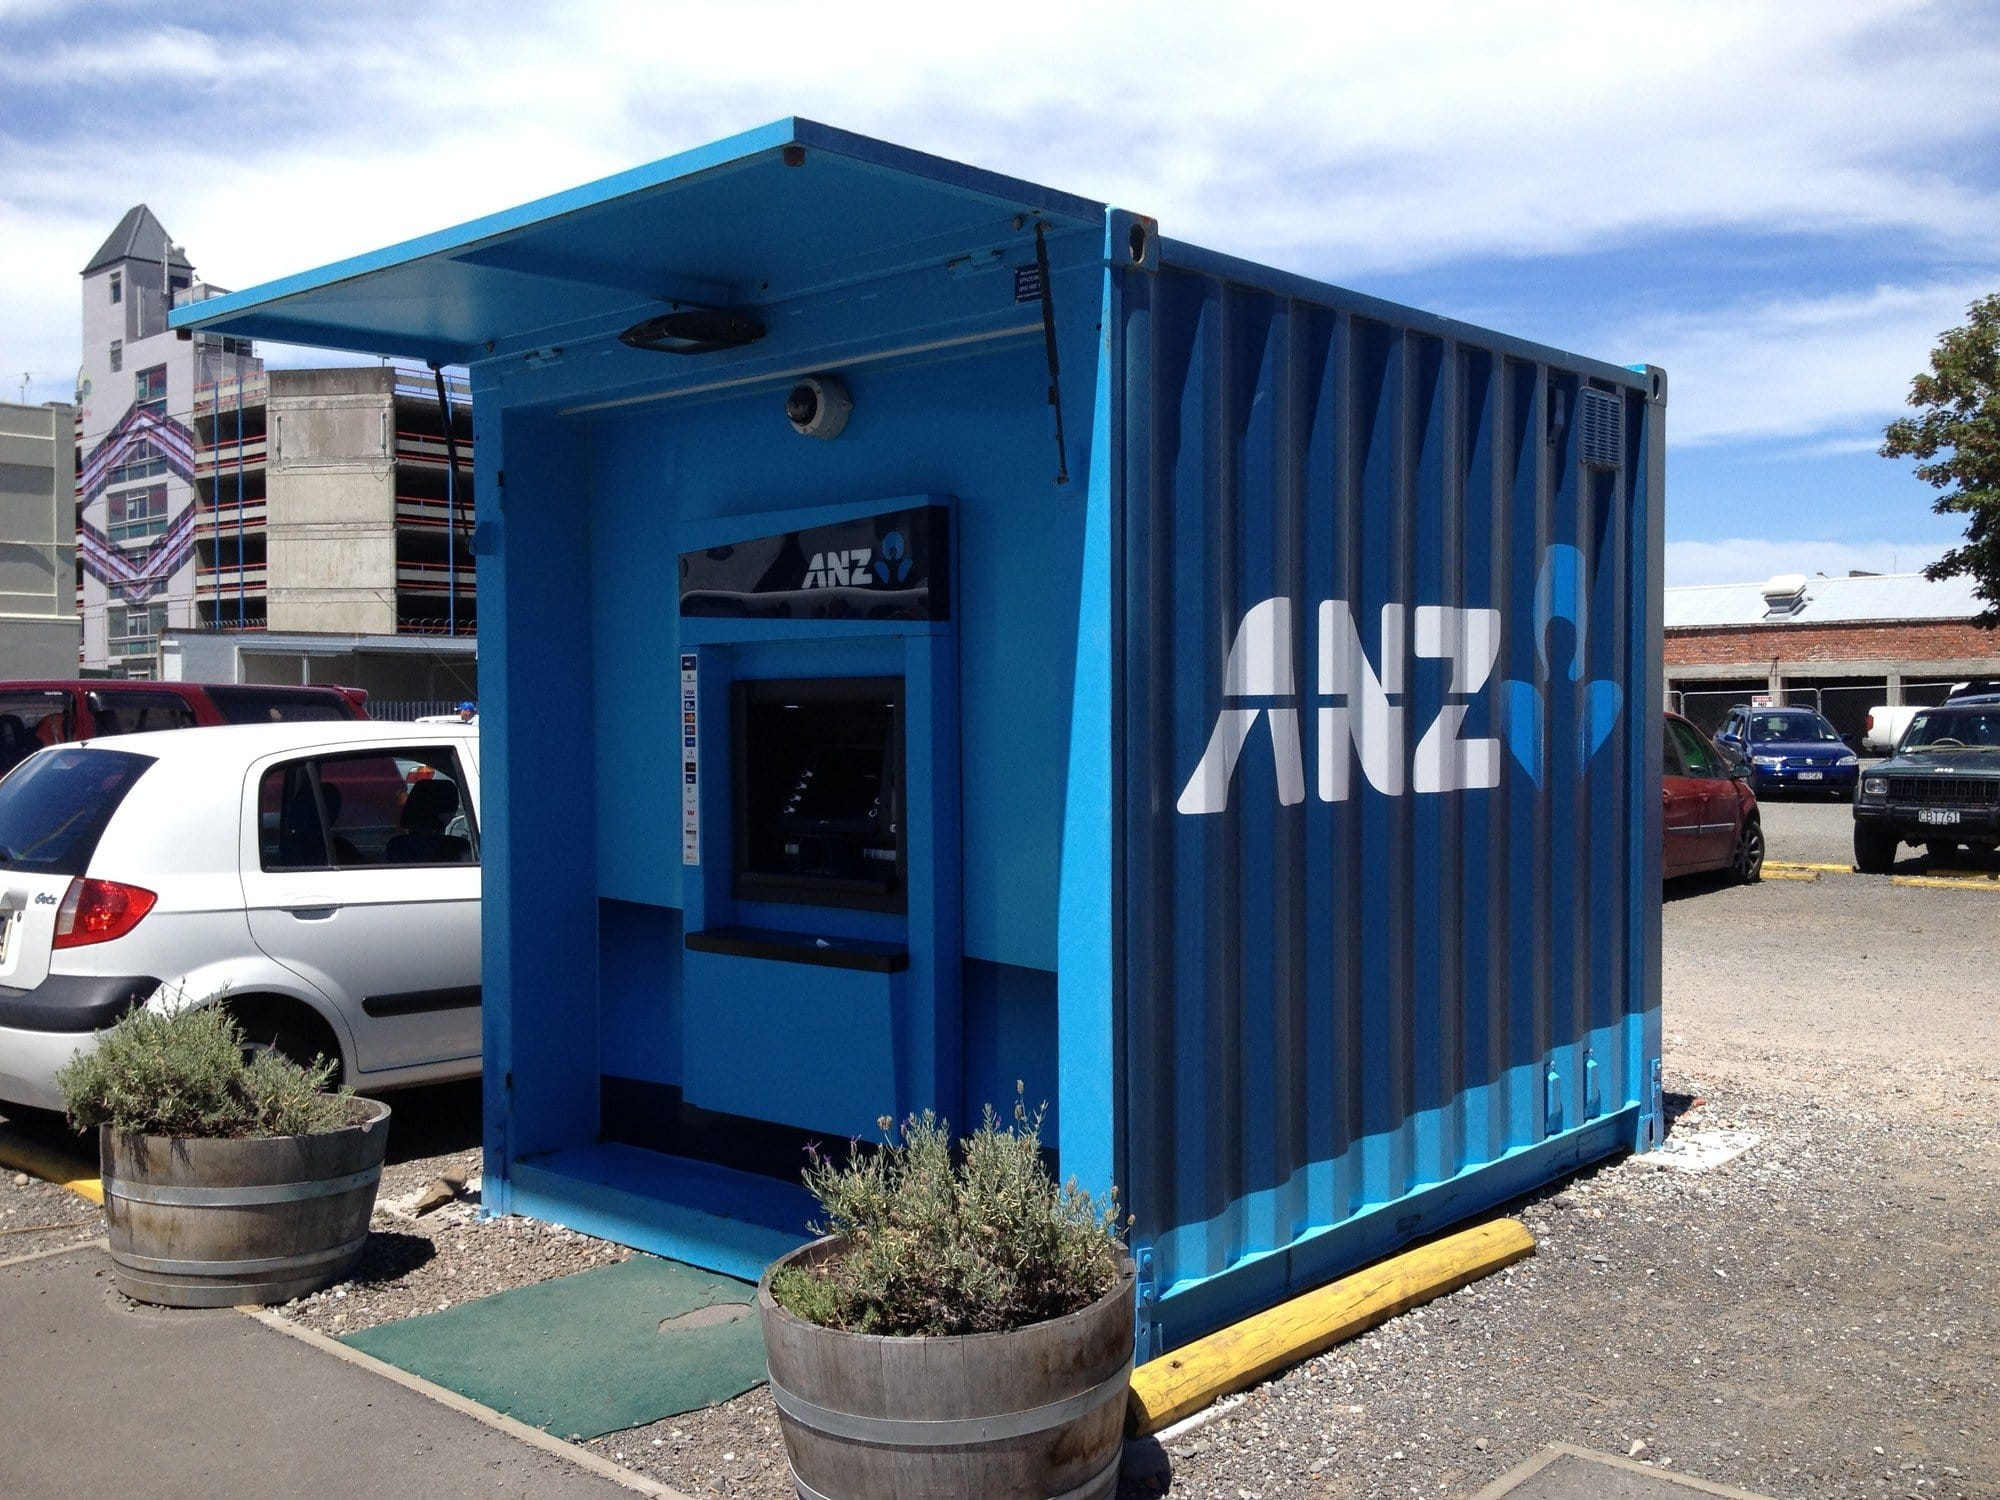 Shipping container cashpoint